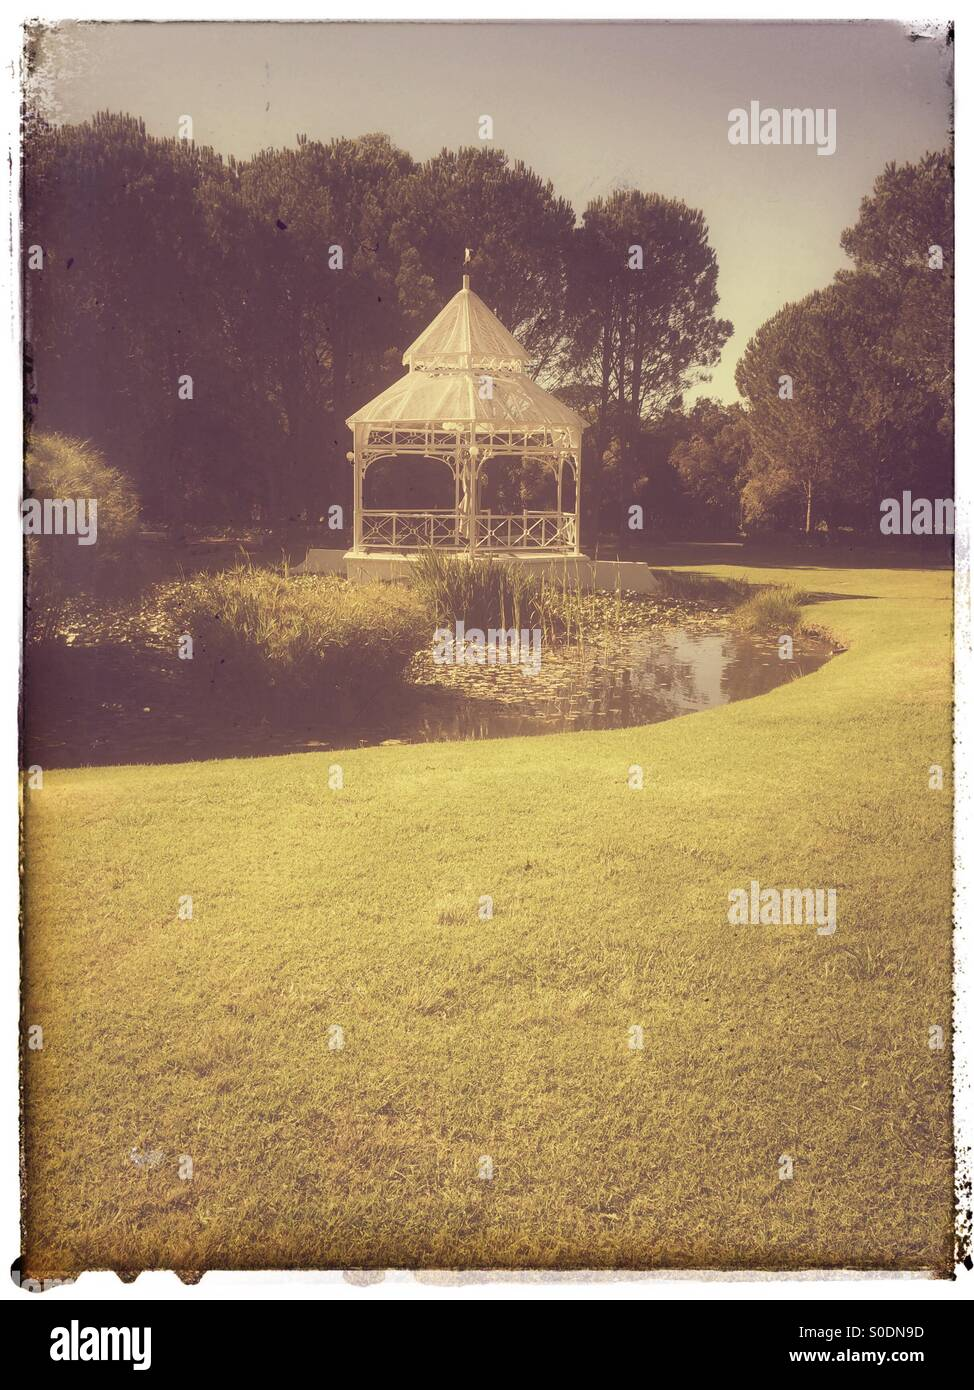 Bandstand at Boschendal Estate in the Cape Winelands . - Stock Image